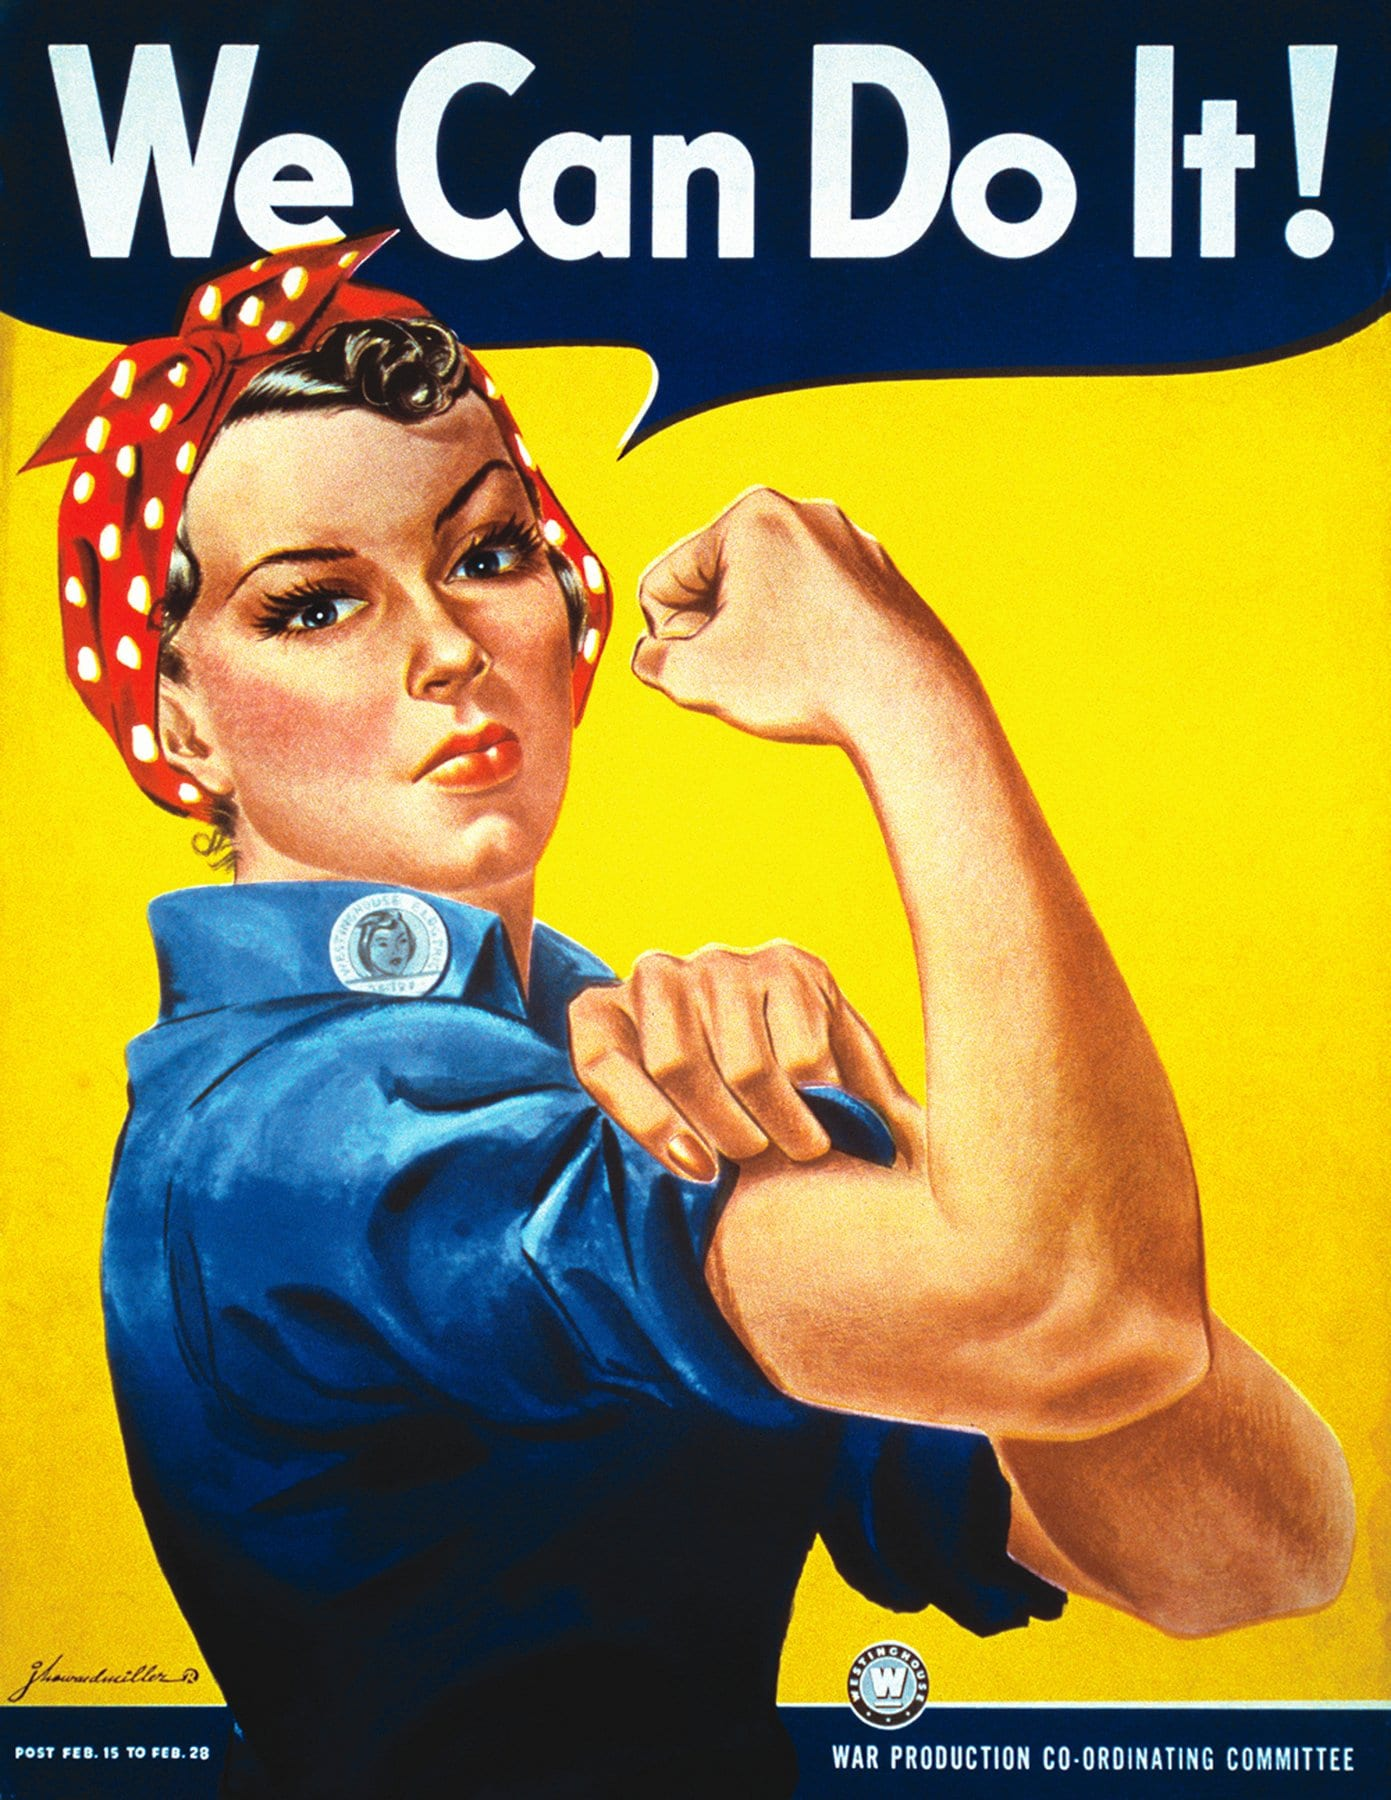 The original Rosie the Riveter 'We can do it' poster from WWII